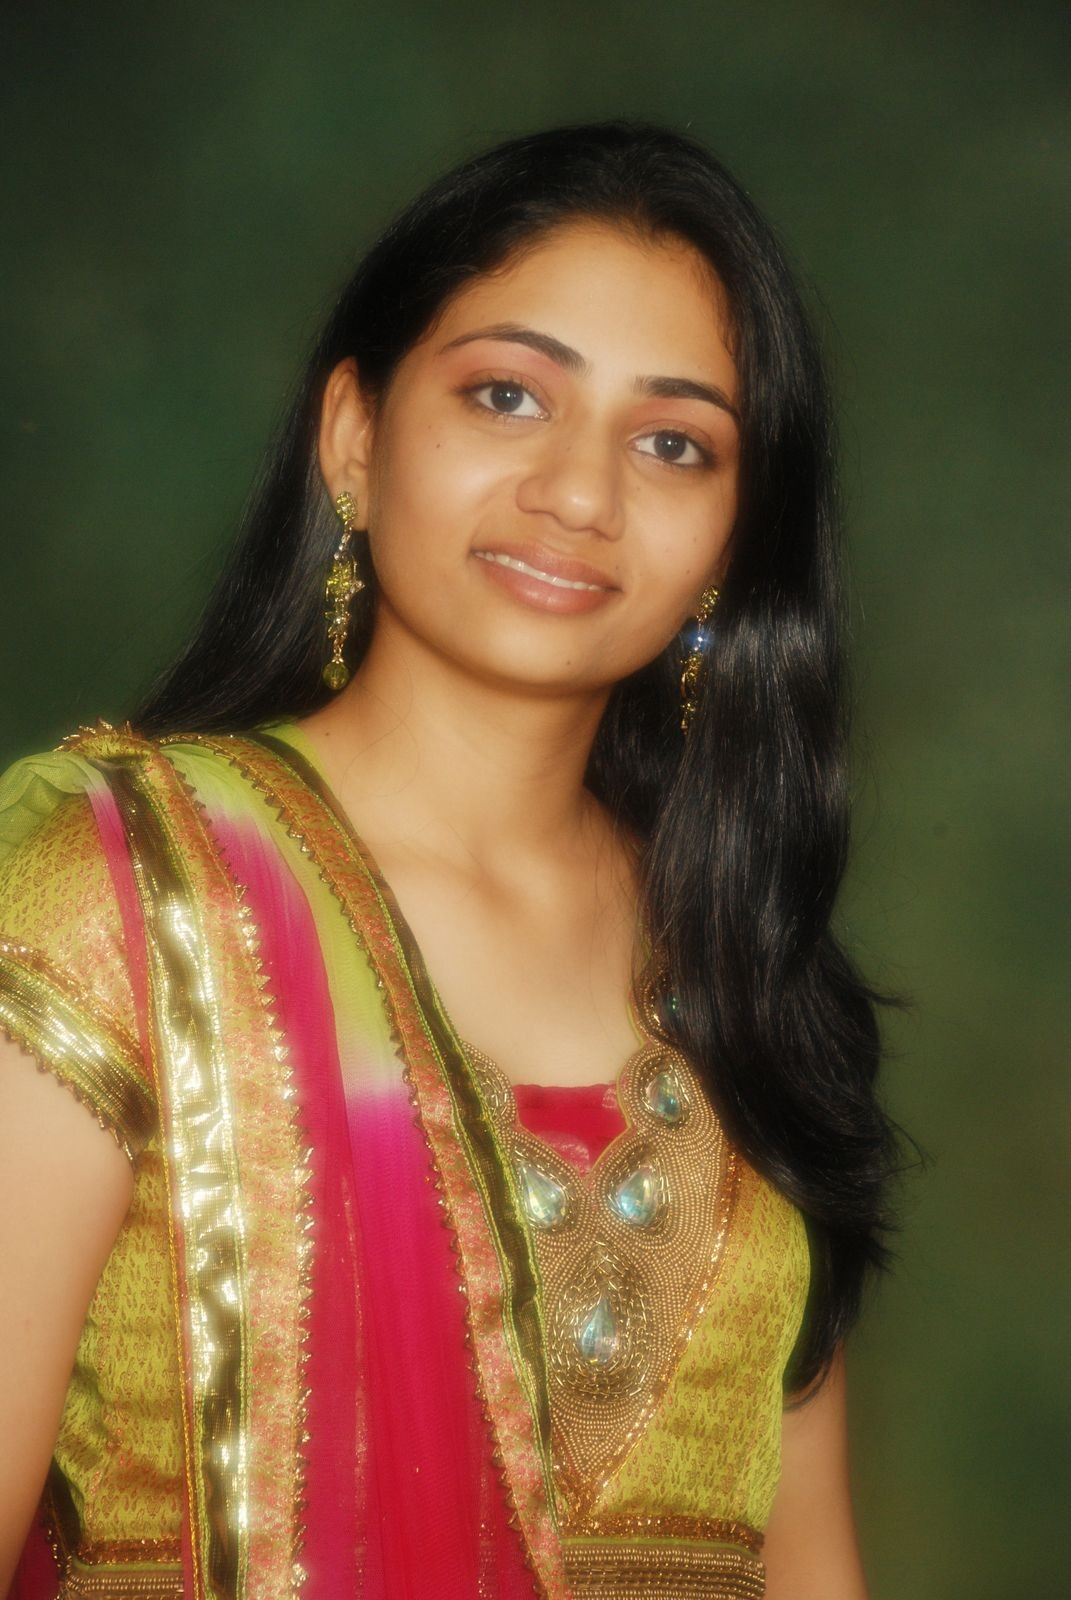 Desi girl with cute structure 1